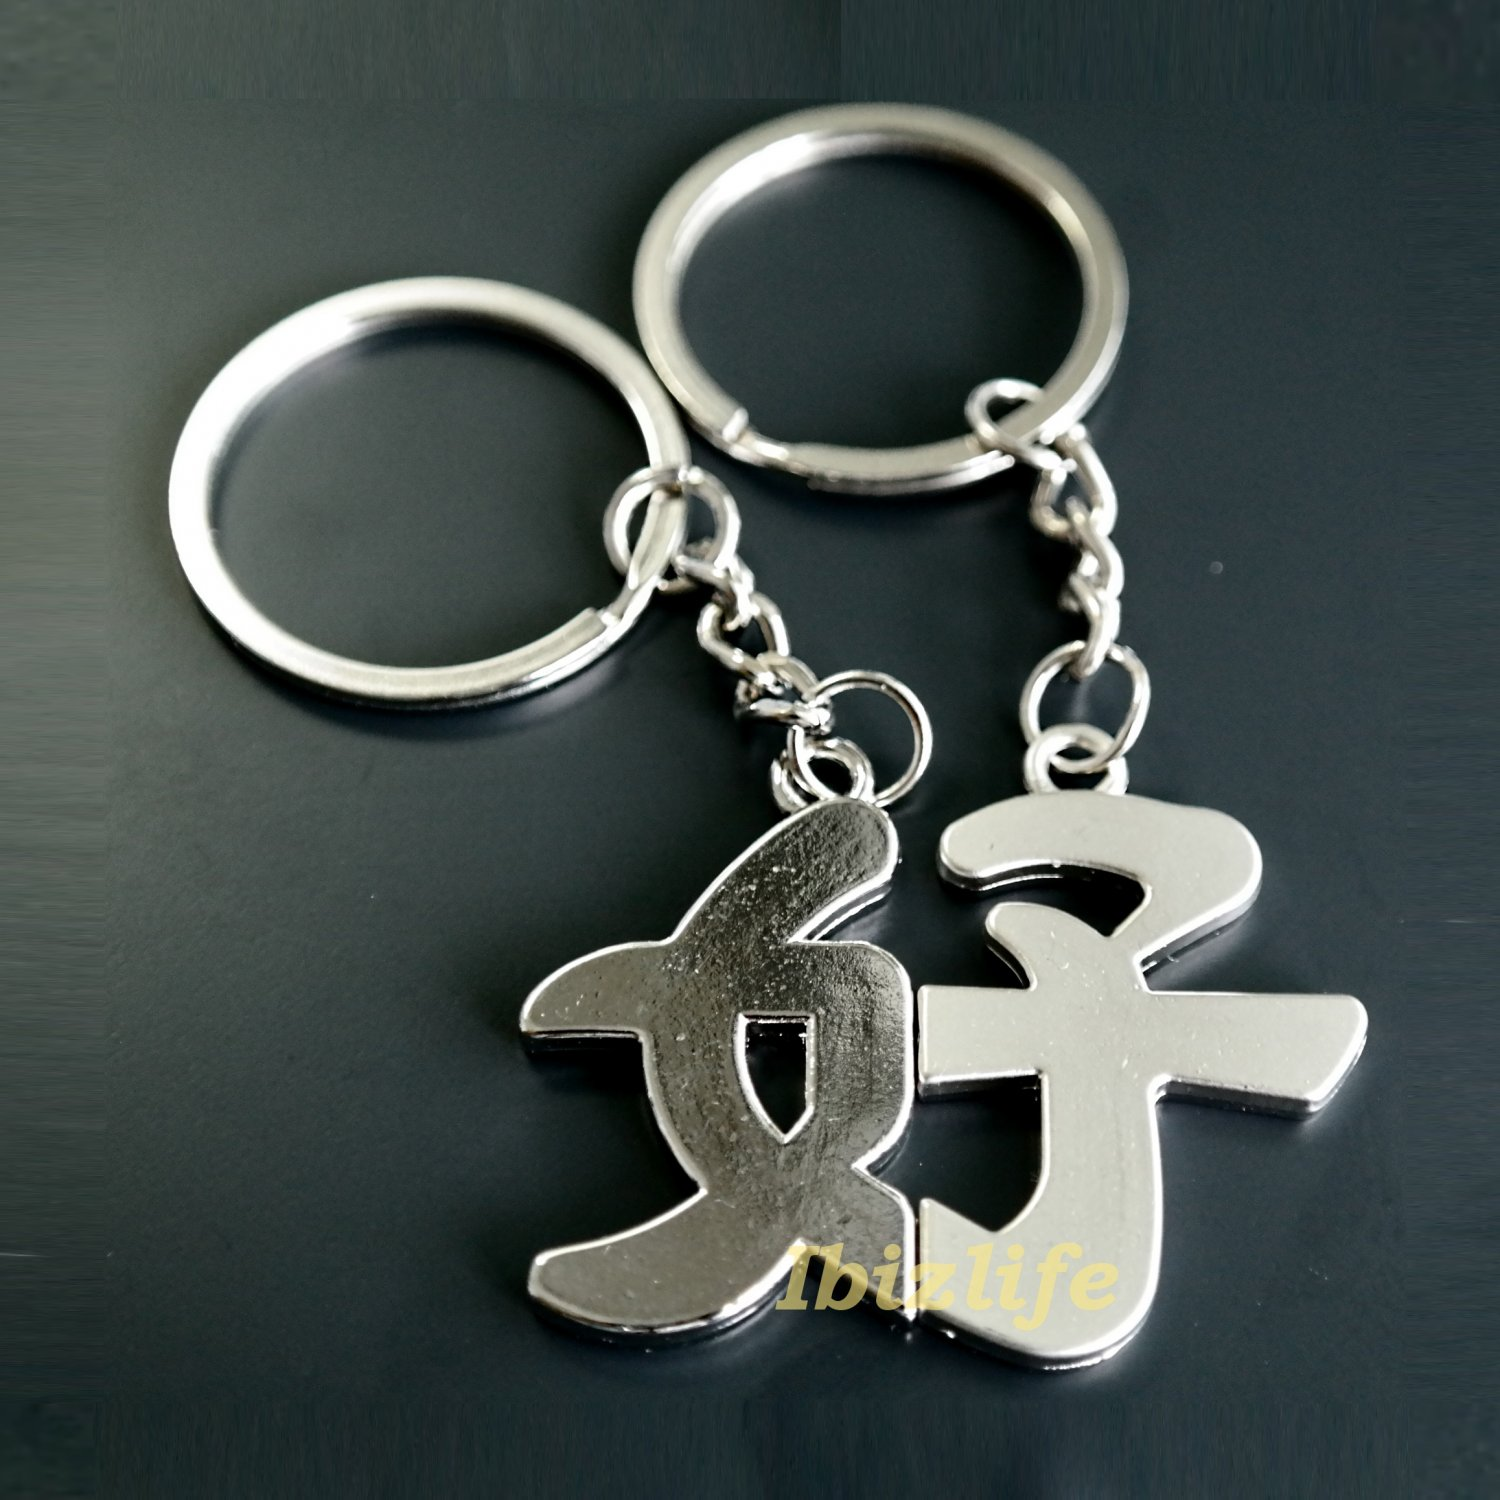 Magnetic Metal keychain with a pair of Chinese letters to GOOD (kc11)